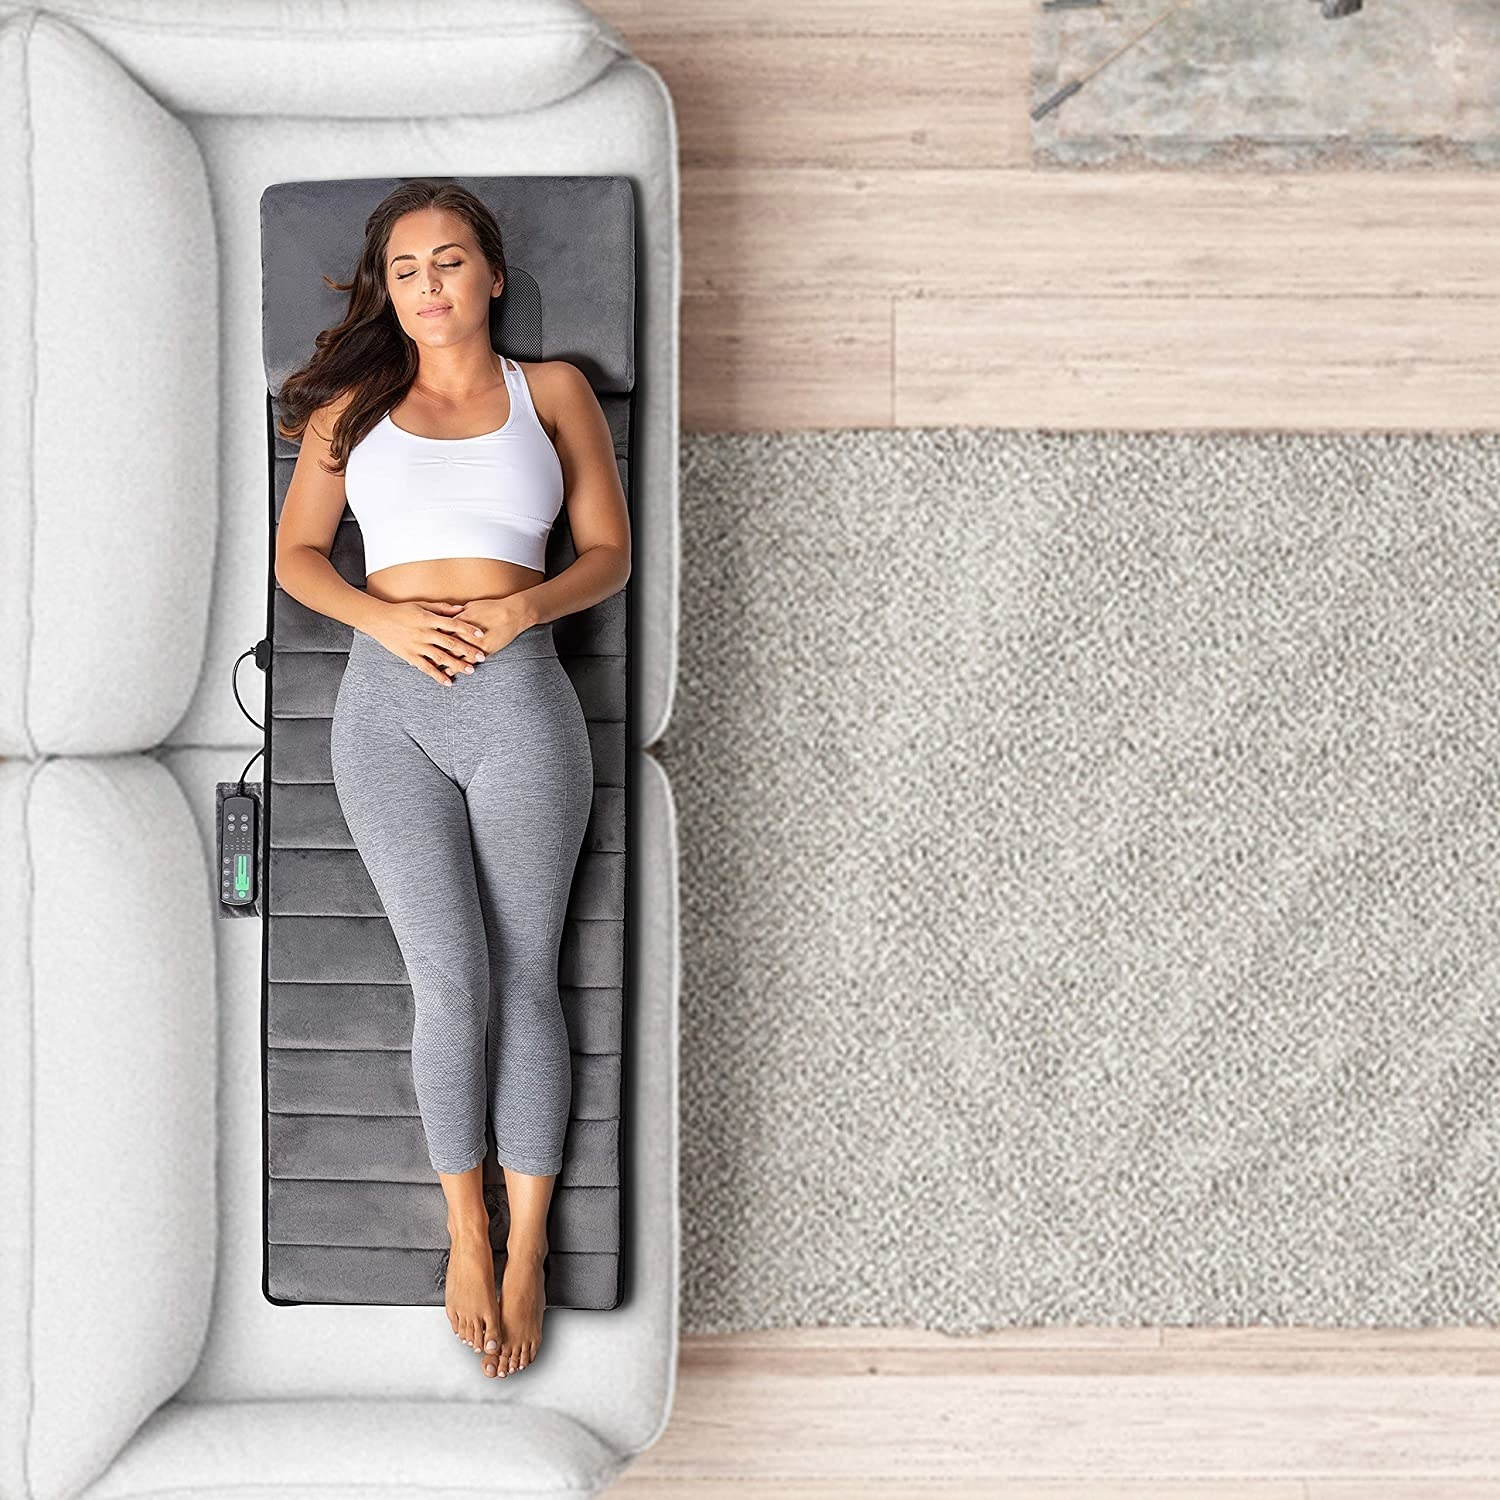 A person lying on the massage mat on their couch